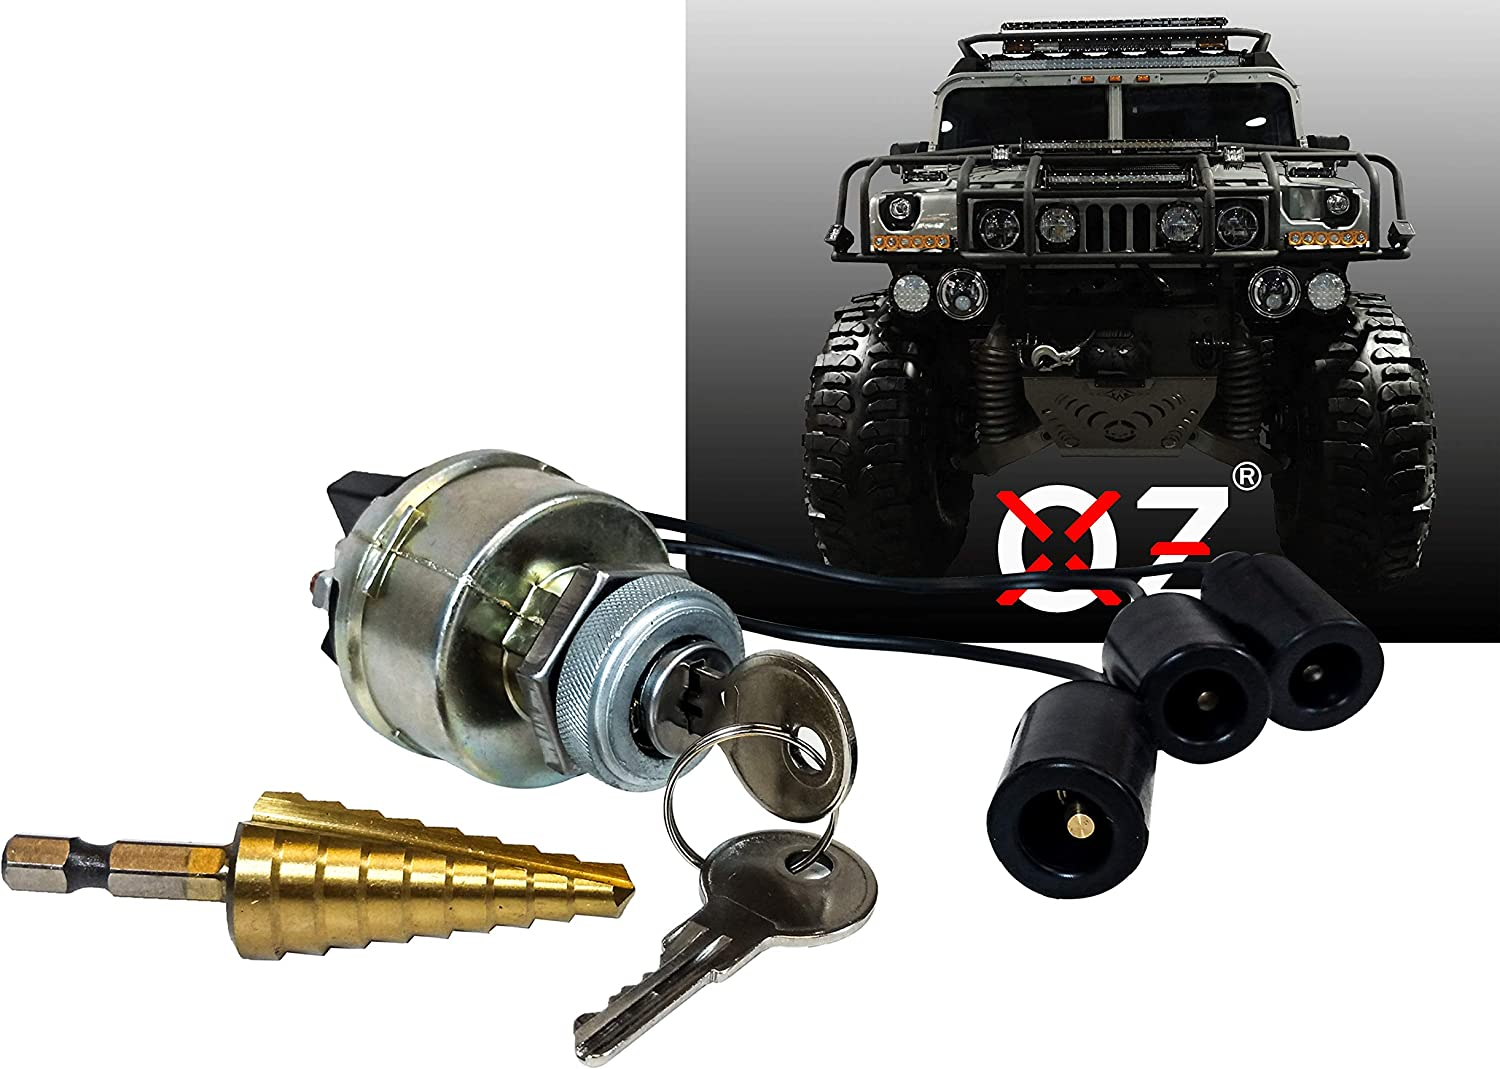 Ignition Starter Keyed Switch Military Overseas parallel import regular item O 4-Position OFF Plug ACC Max 54%